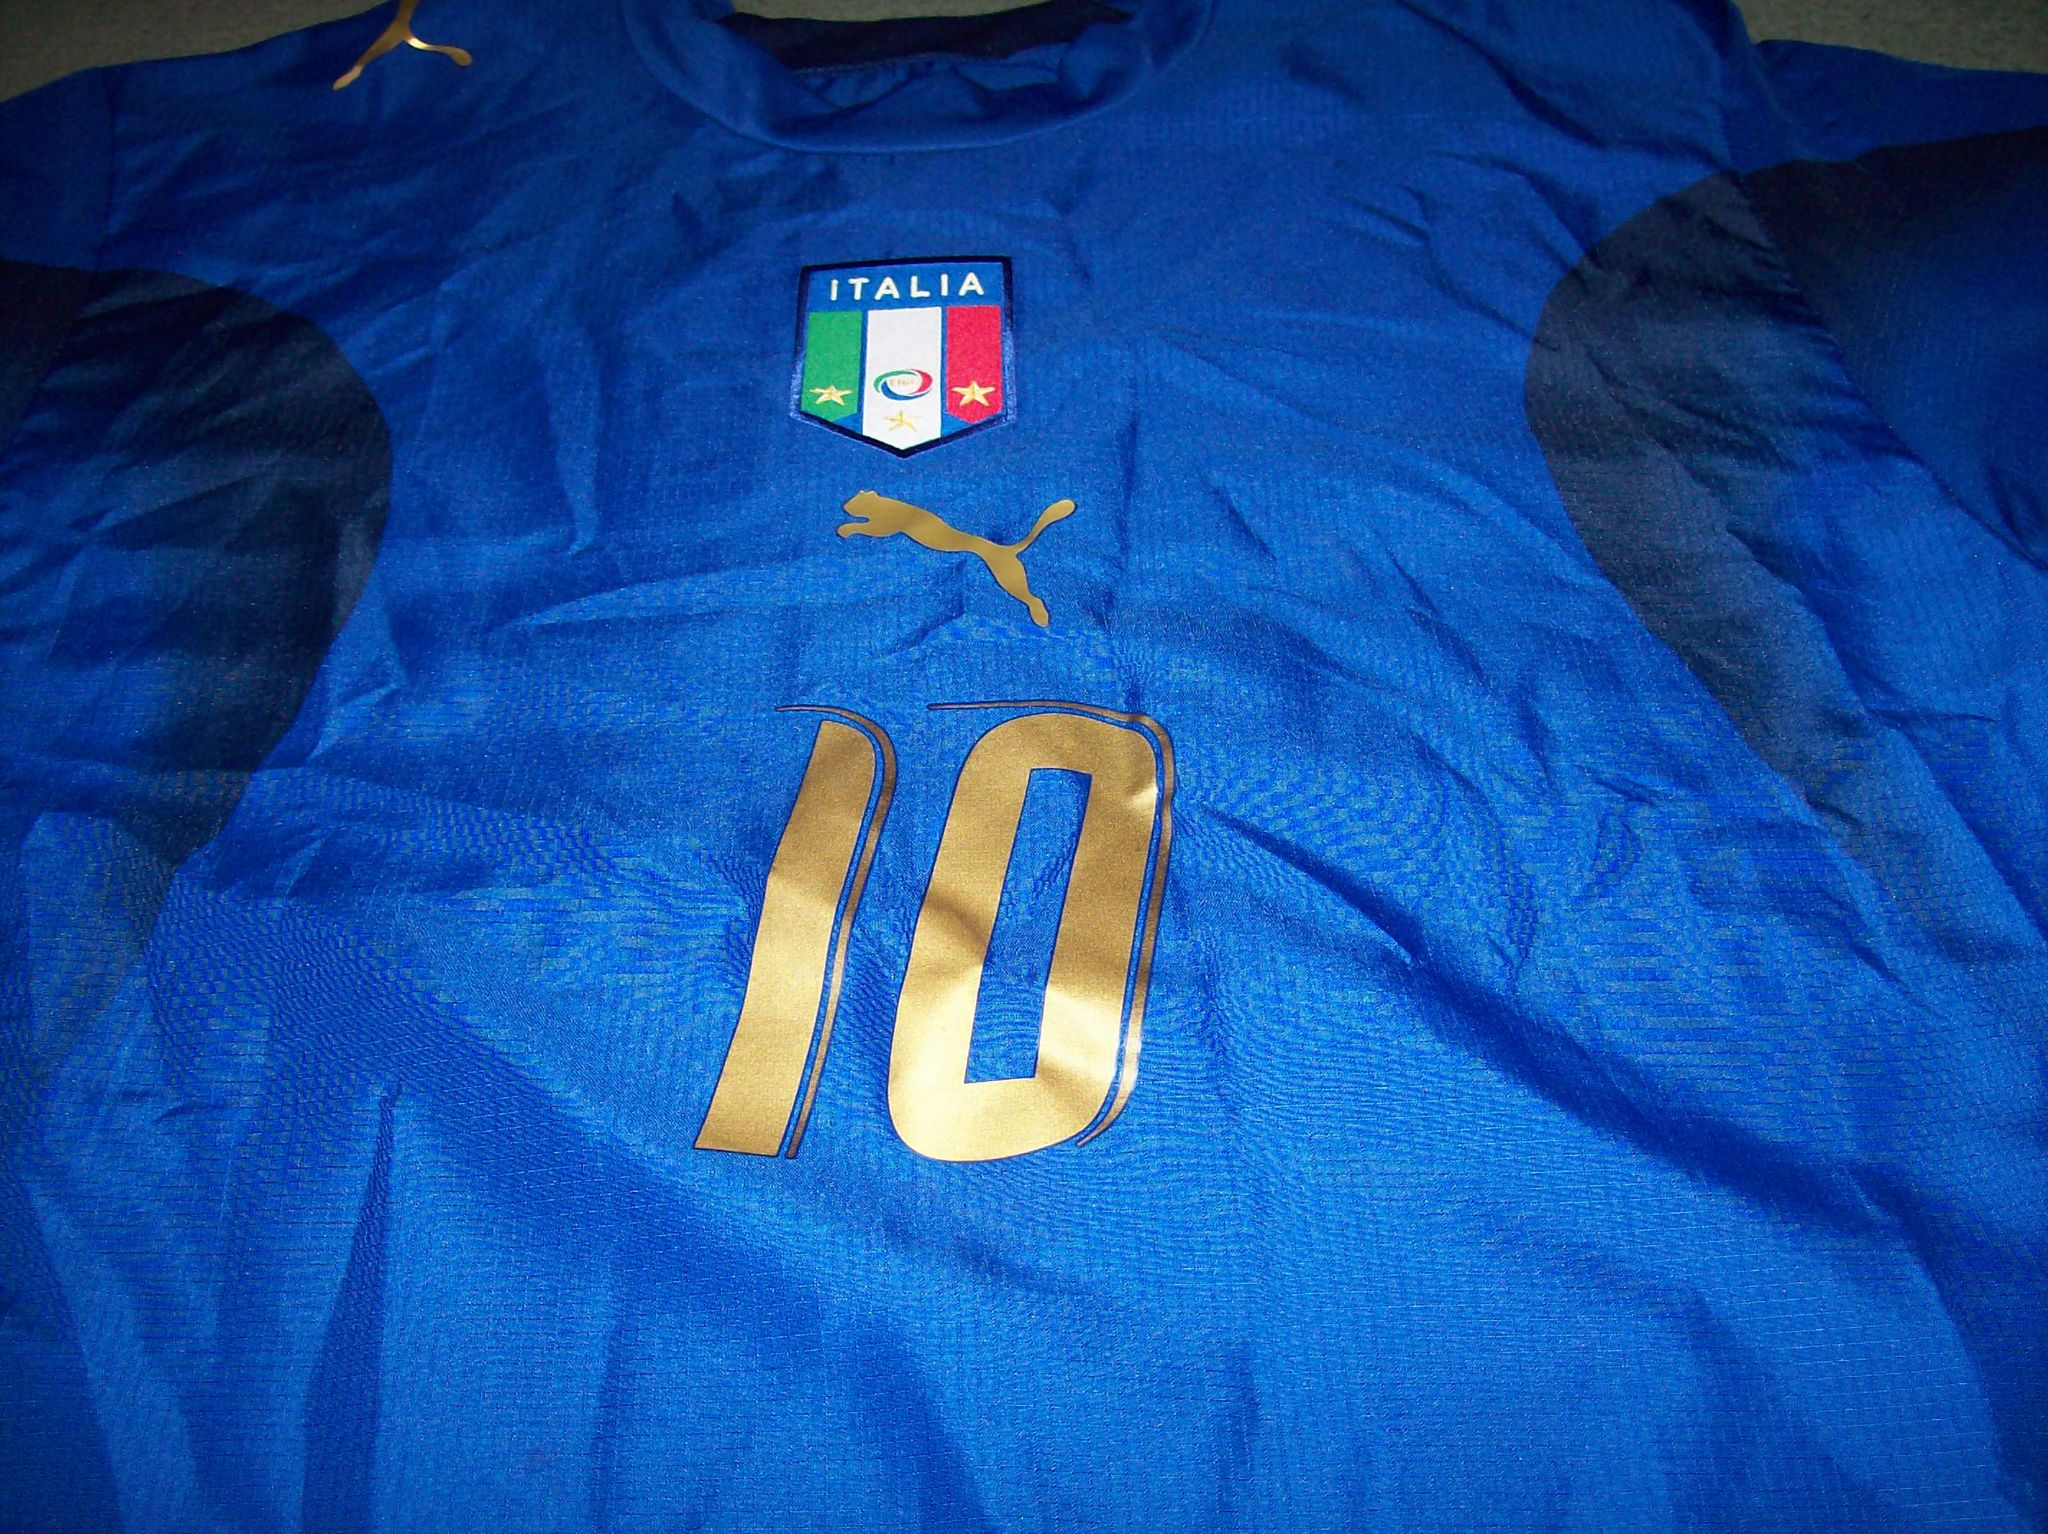 Global Classic Football Shirts 2006 Italy Totti World Cup Old